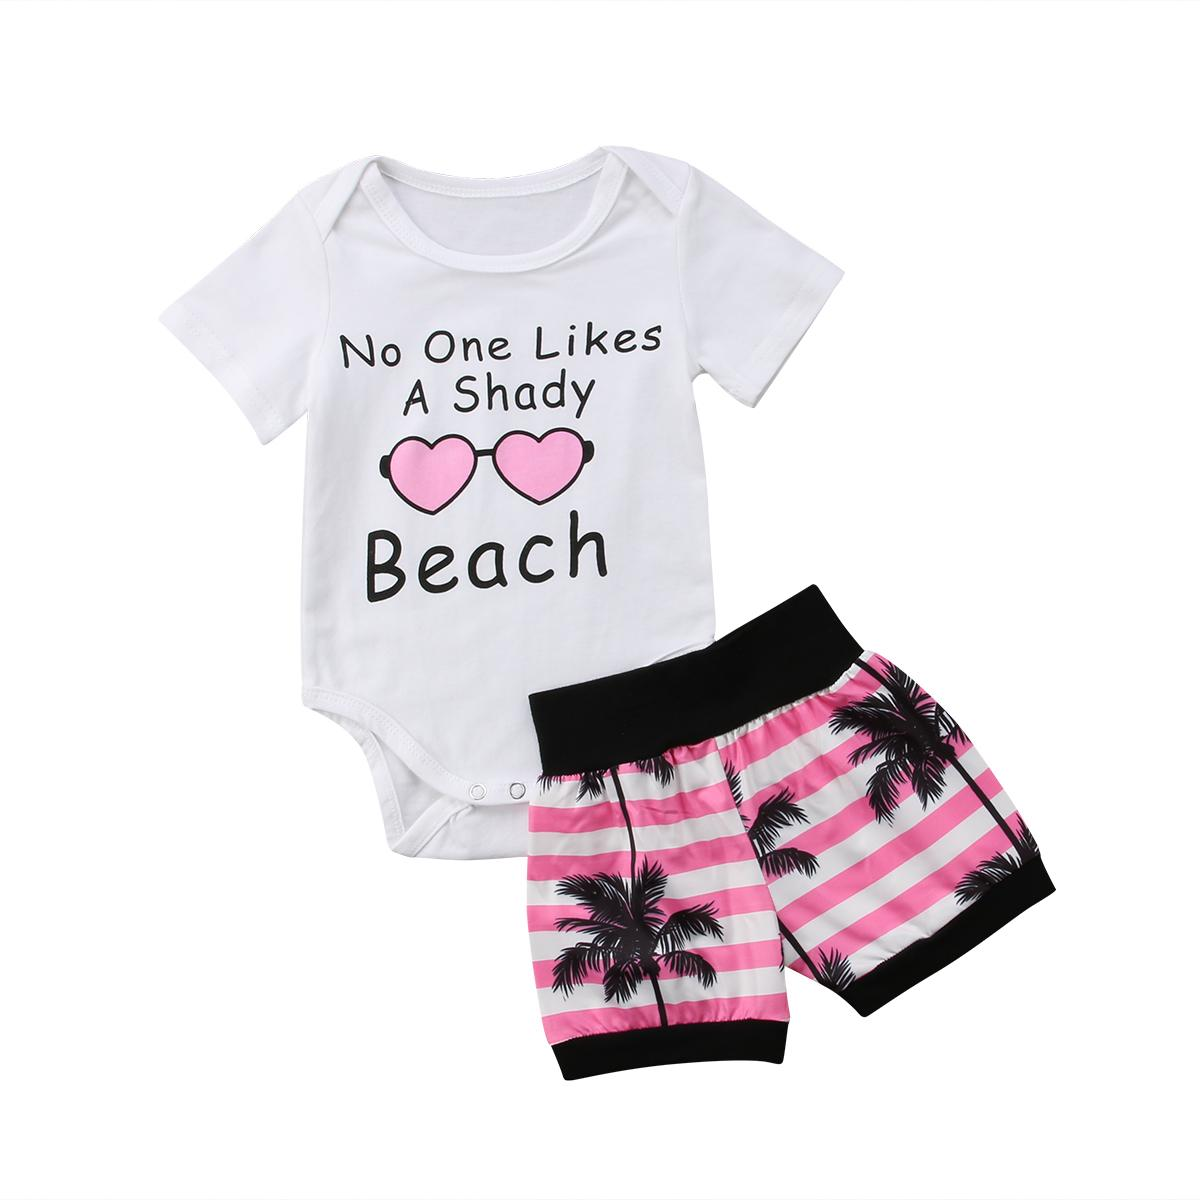 4f381986 2019 Newborn Baby Boy Girl Hawaii Tops T Shirt Pants Shorts Outfits Clothes  Set From Sightly, $35.66   DHgate.Com